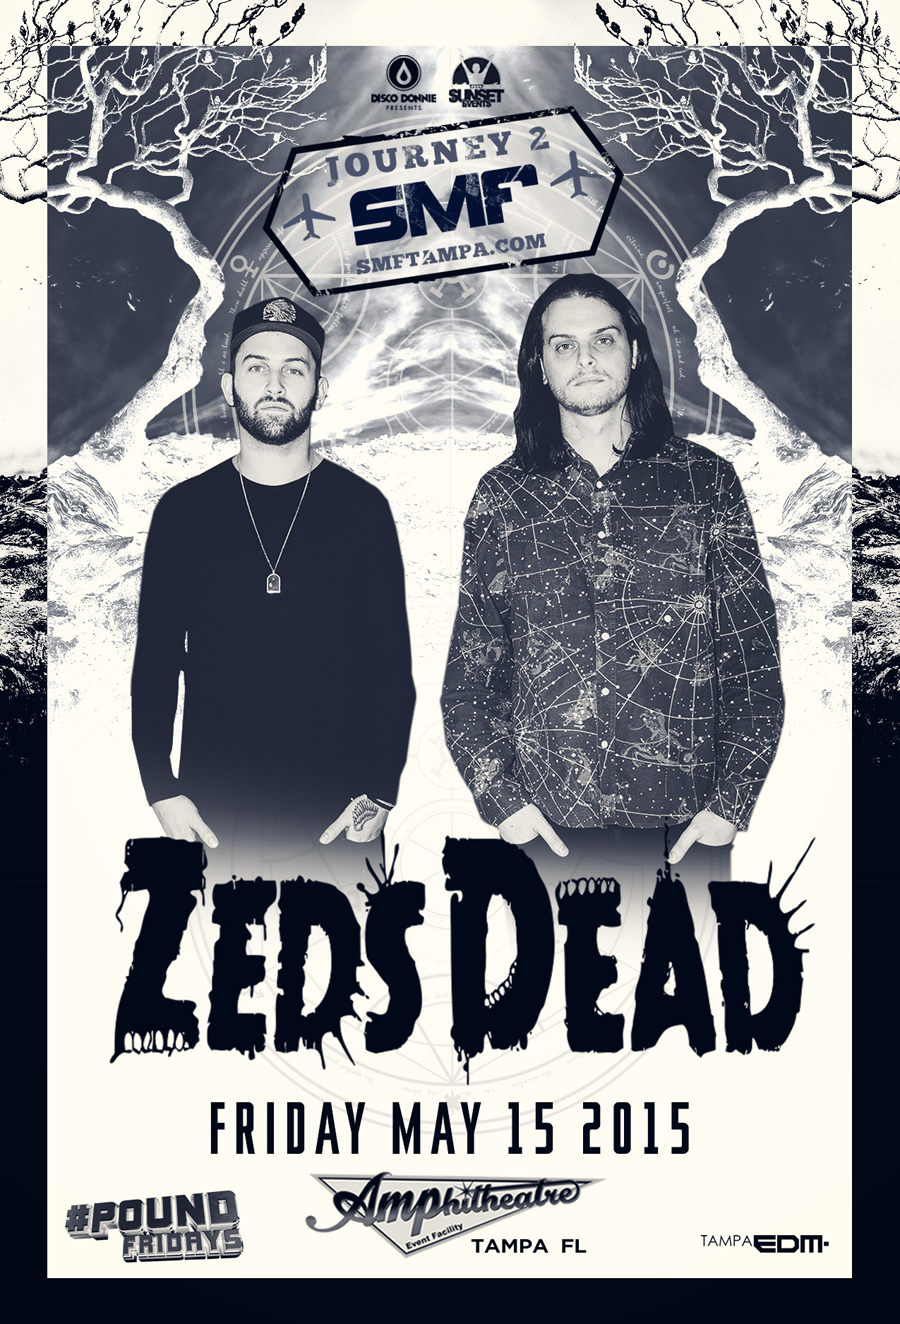 Zeds Dead – Journey2SMF – Friday, May 15, 2015